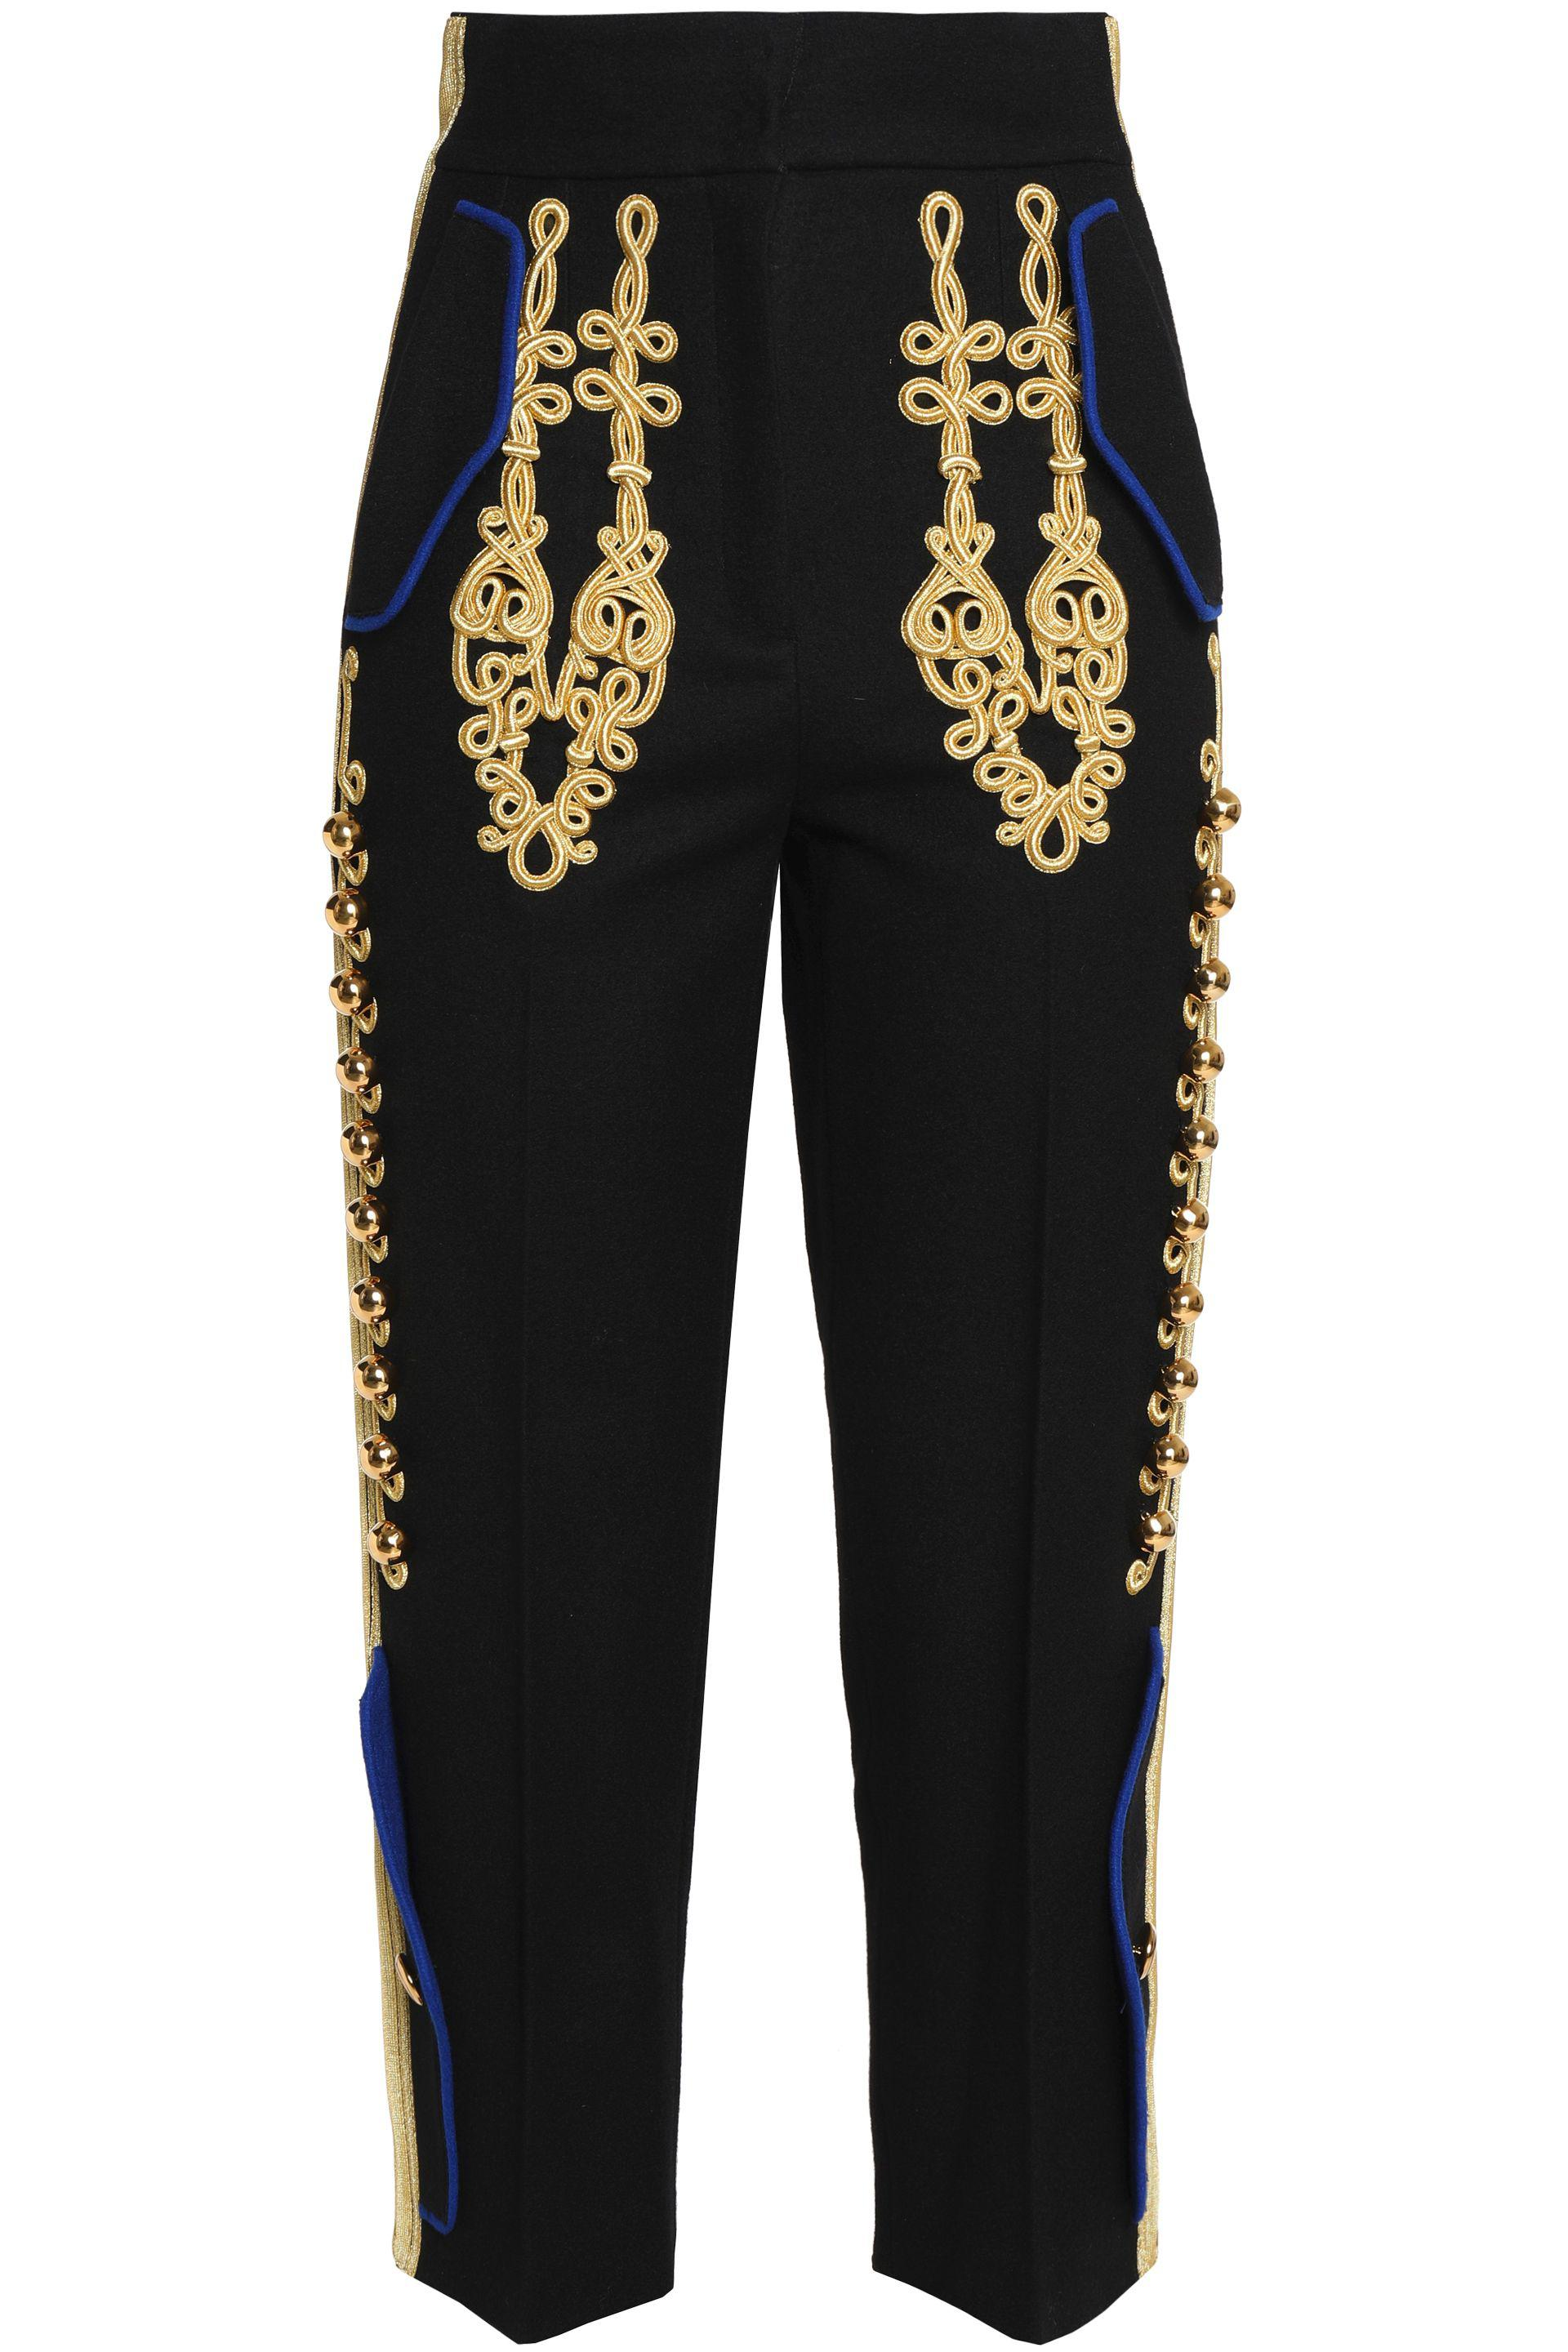 c6da98da191 dolce-gabbana-Black-Cropped-Embellished-Wool-blend-Tapered-Pants.jpeg